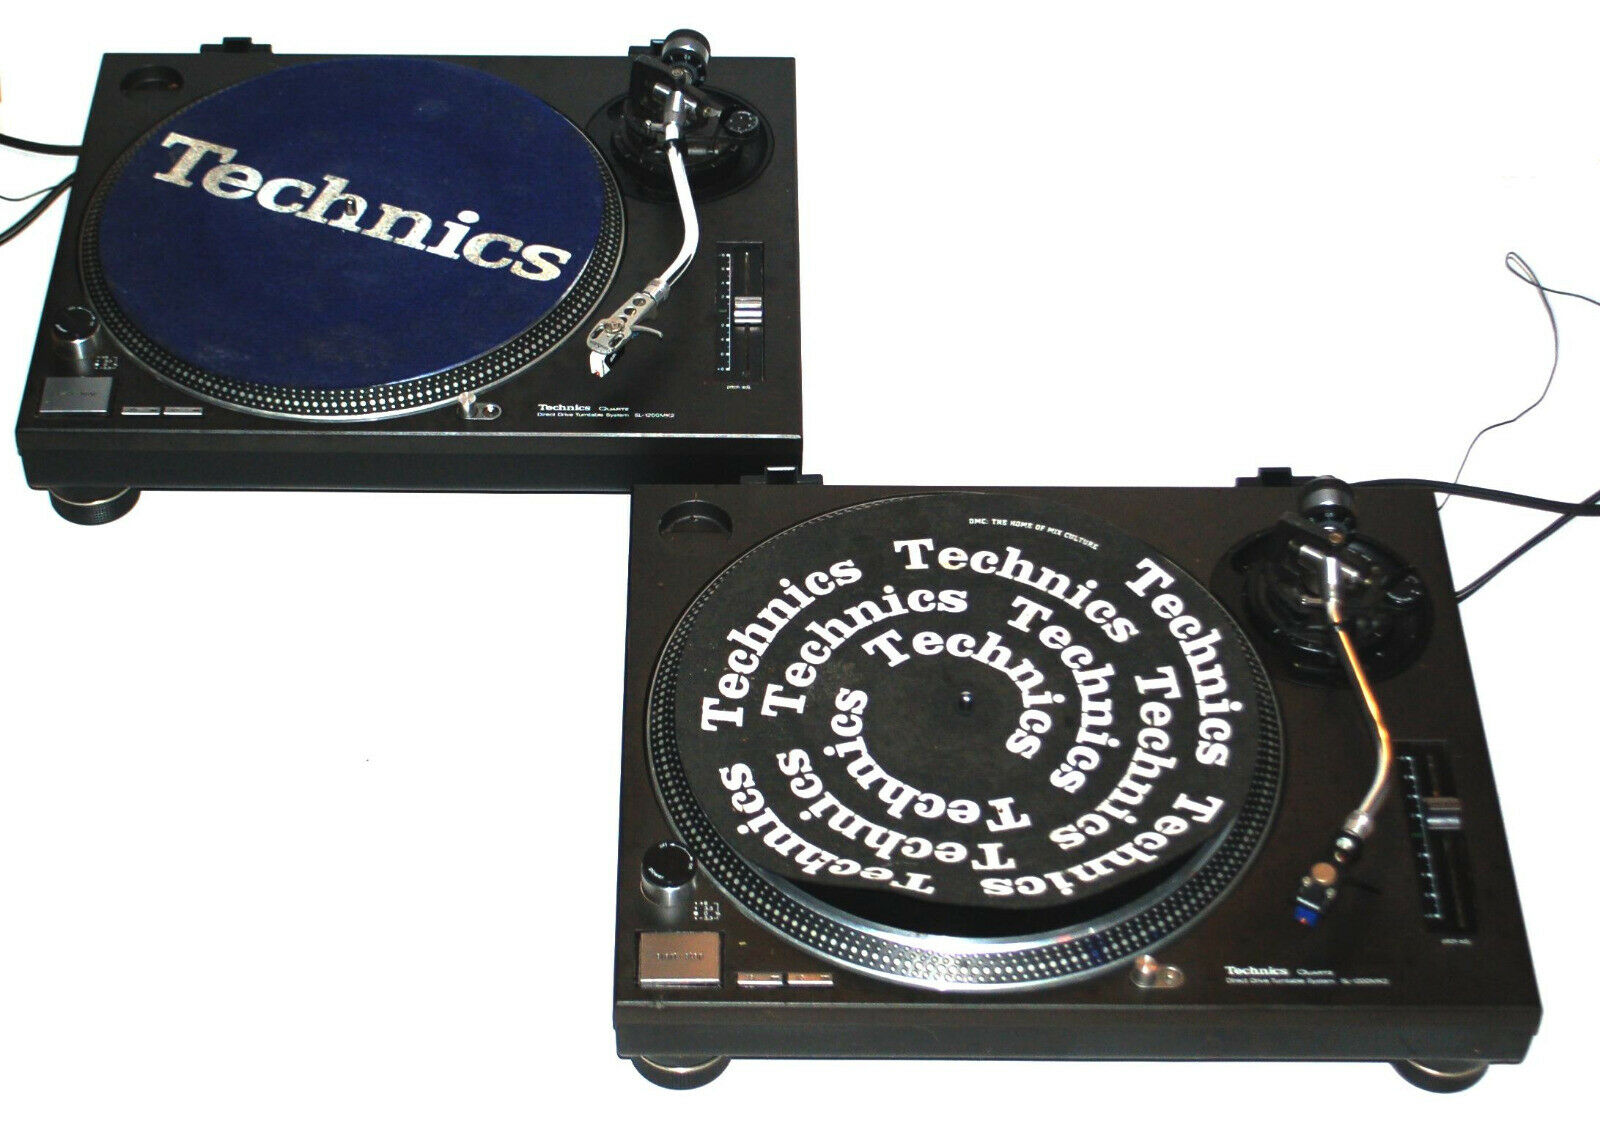 Image 1 - Vintage-Pair-of-Technics-SL-1200MK2-Direct-Drive-DJ-Turntables-Storage-Find